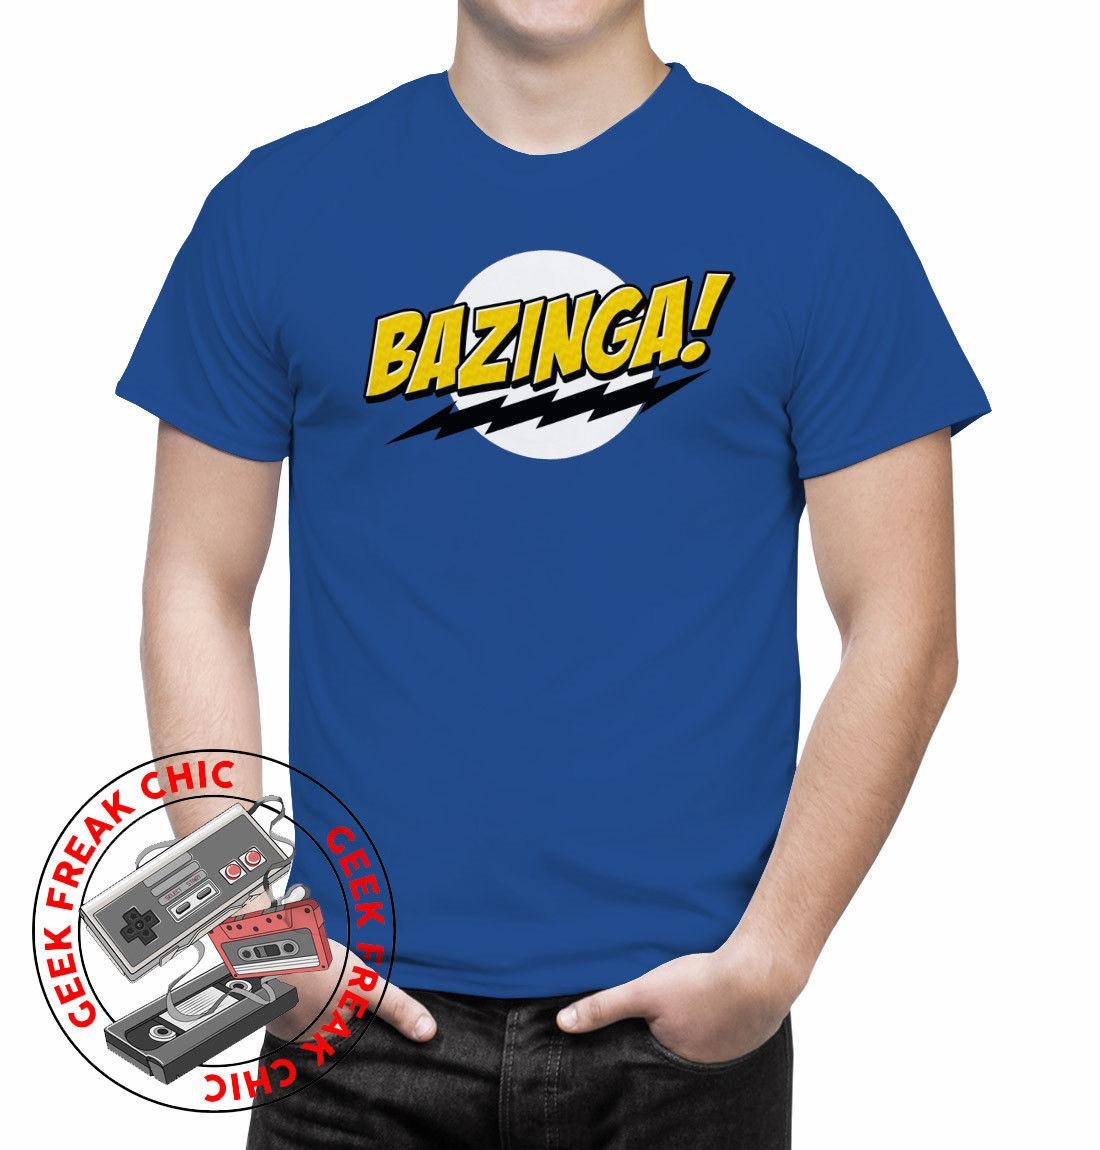 72ab44ced9 The Big Bang Theory Bazinga Men'S T Shirt Sheldon Cooper Leonard Penny  Comedy Urban T Shirts Irish T Shirts From Goodquality73, $11.17| DHgate.Com